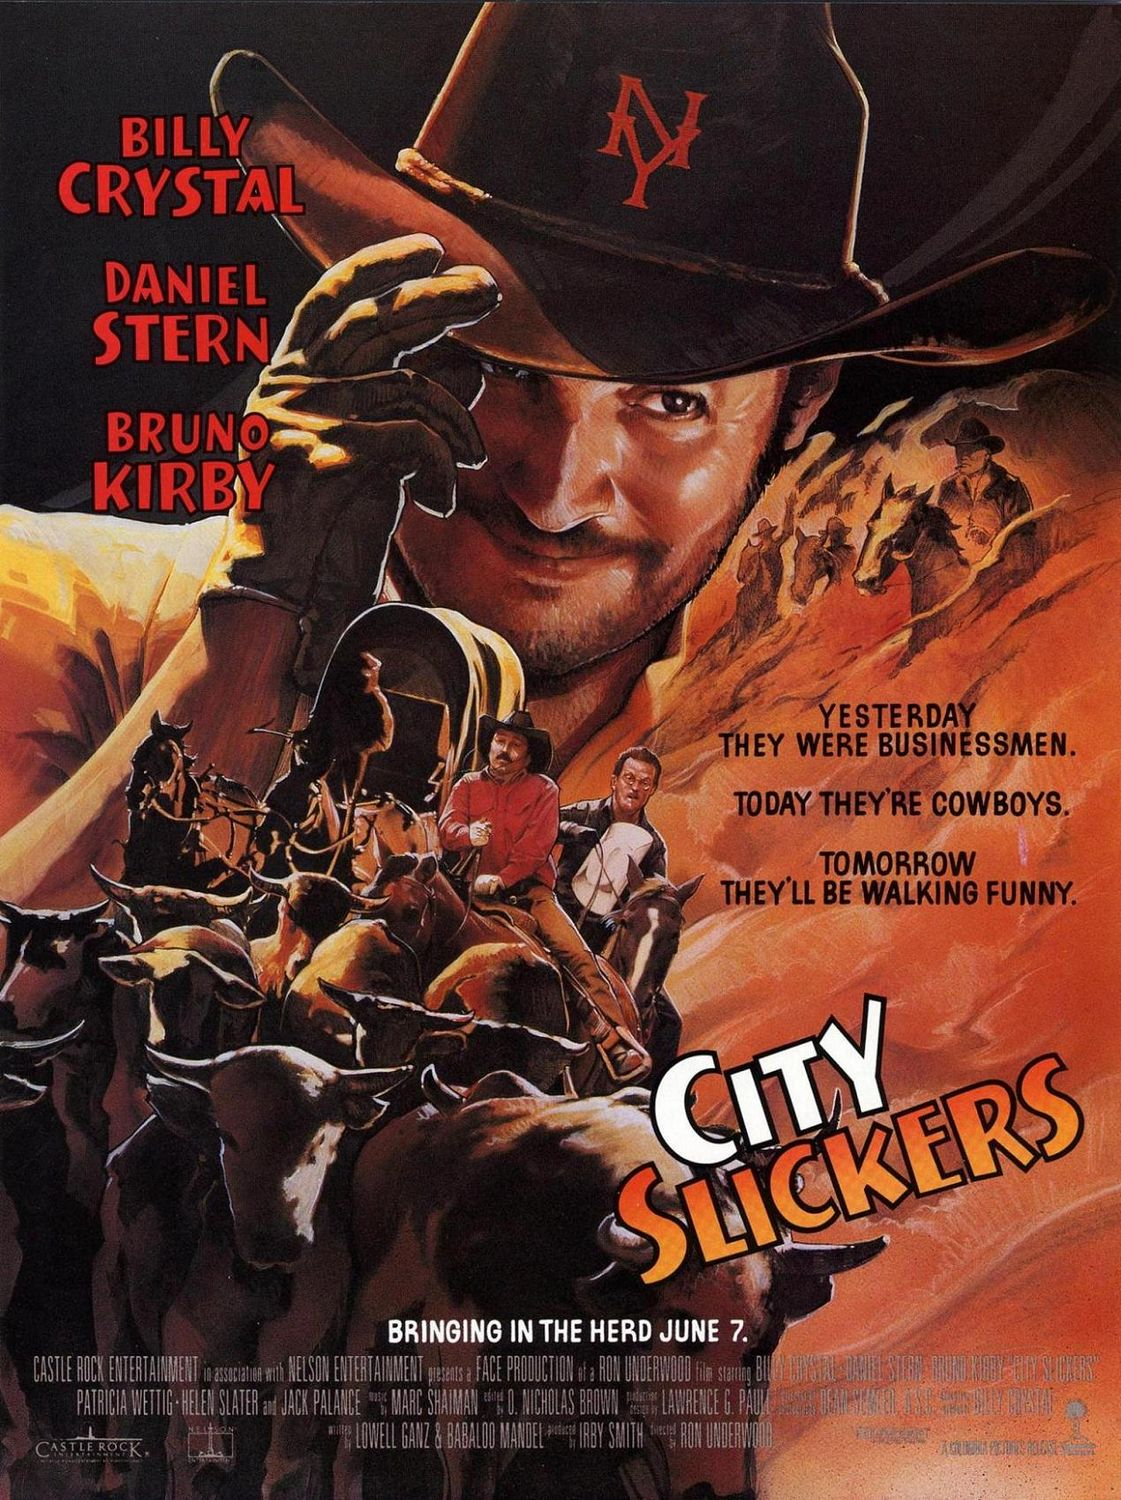 Billy Crystal Looks Back at the Making of City Slickers